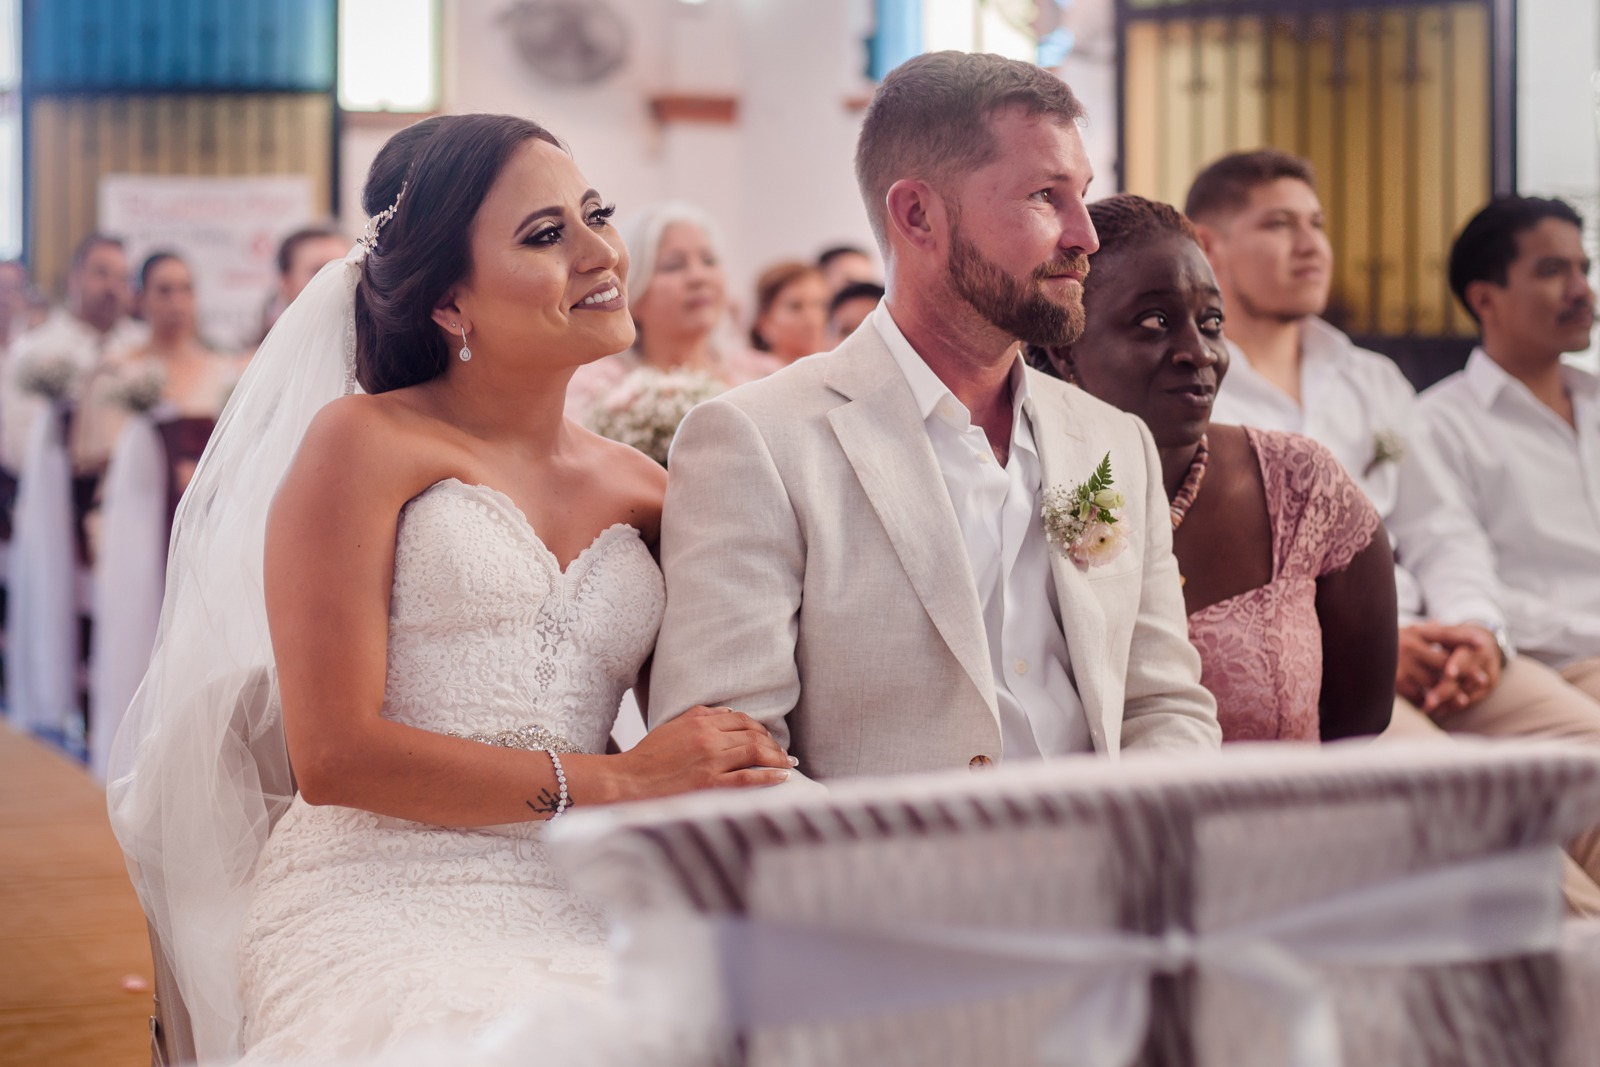 bride-groom-translate-church-smile-wedding-ceremony